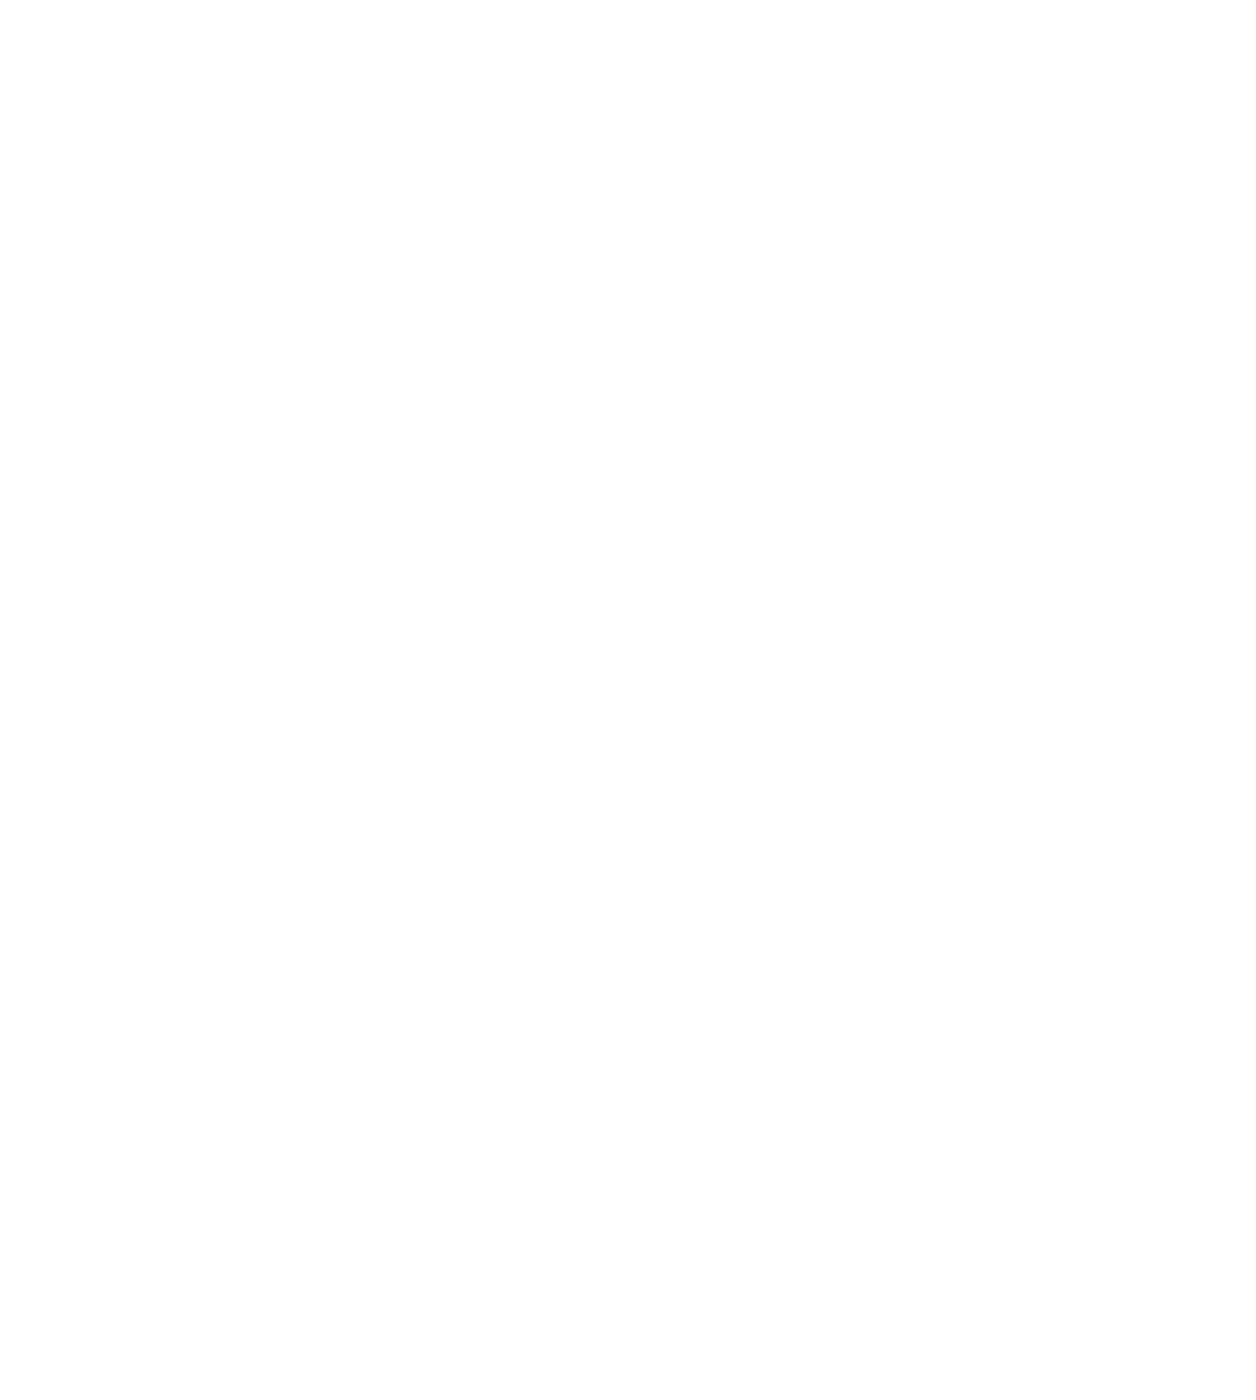 Hearing The Homeless